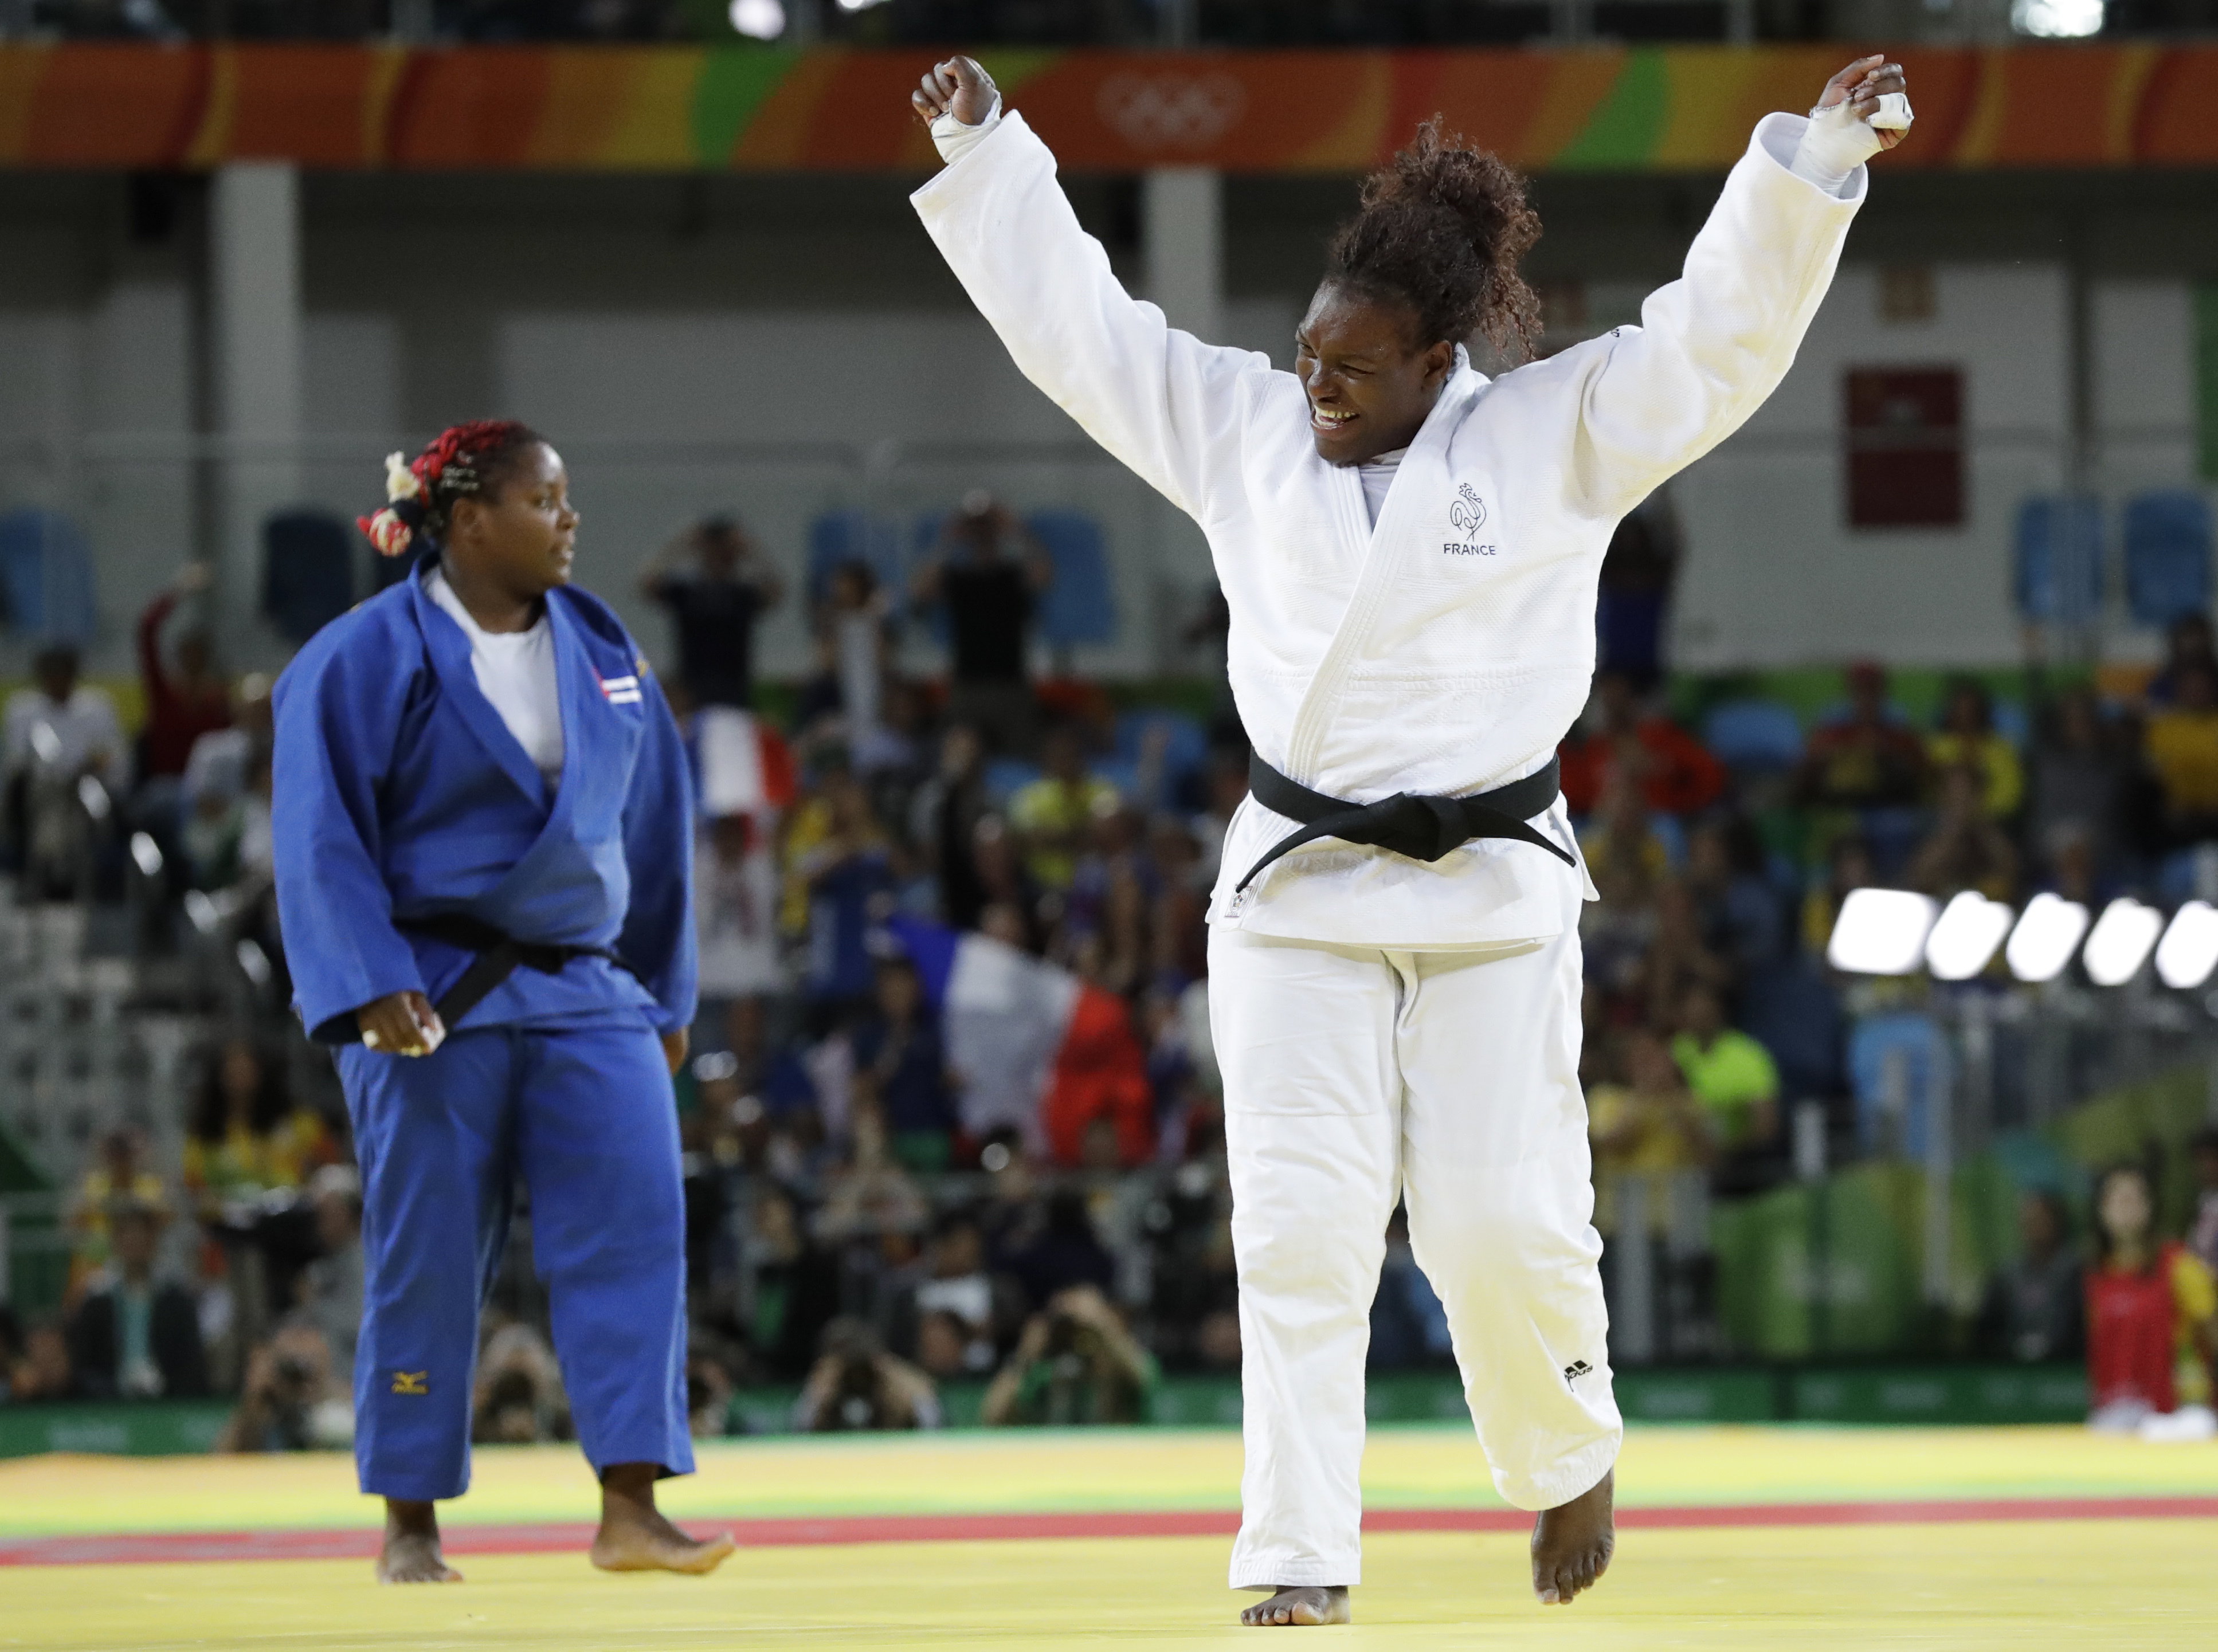 France's Emilie Andeol, right, reacts after defeating Cuba's Idalys Ortiz to win the gold medal during the women's +78 kg judo competition of the 2016 Summer Olympics in Rio de Janeiro, Brazil, Friday, Aug. 12, 2016. (AP Photo/Gregory Bull)